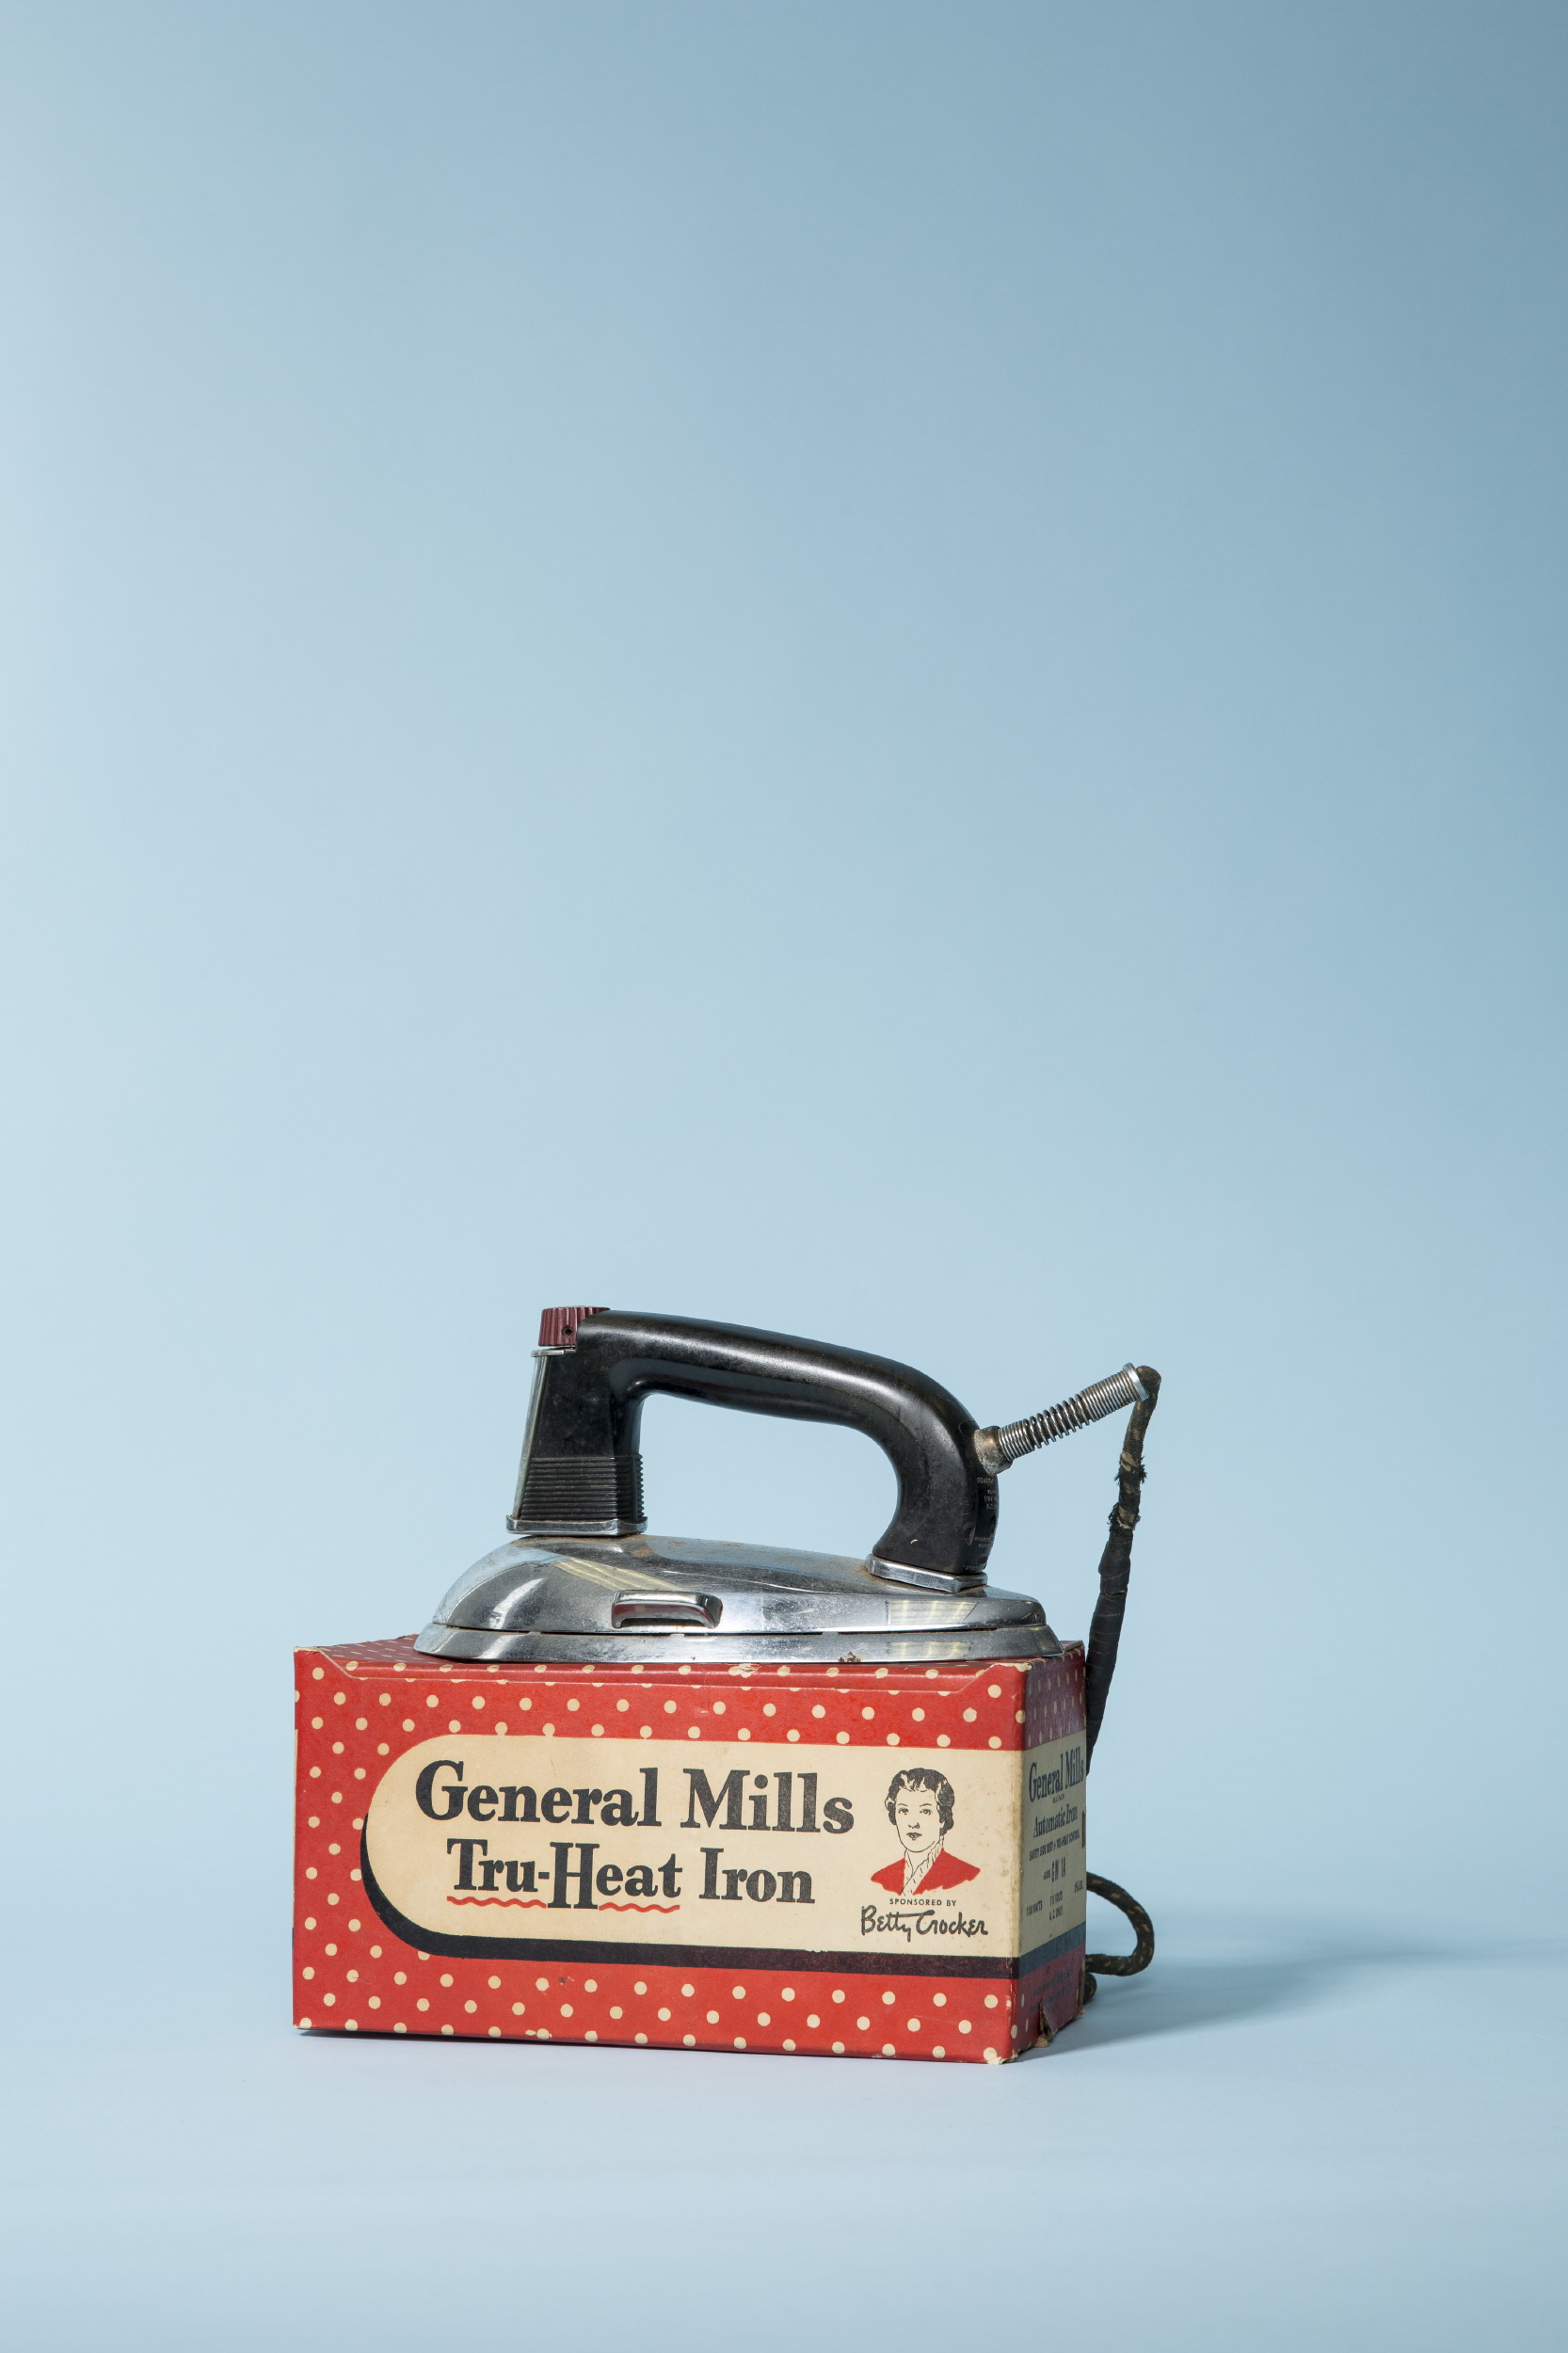 General Mills Archive for The New York Times